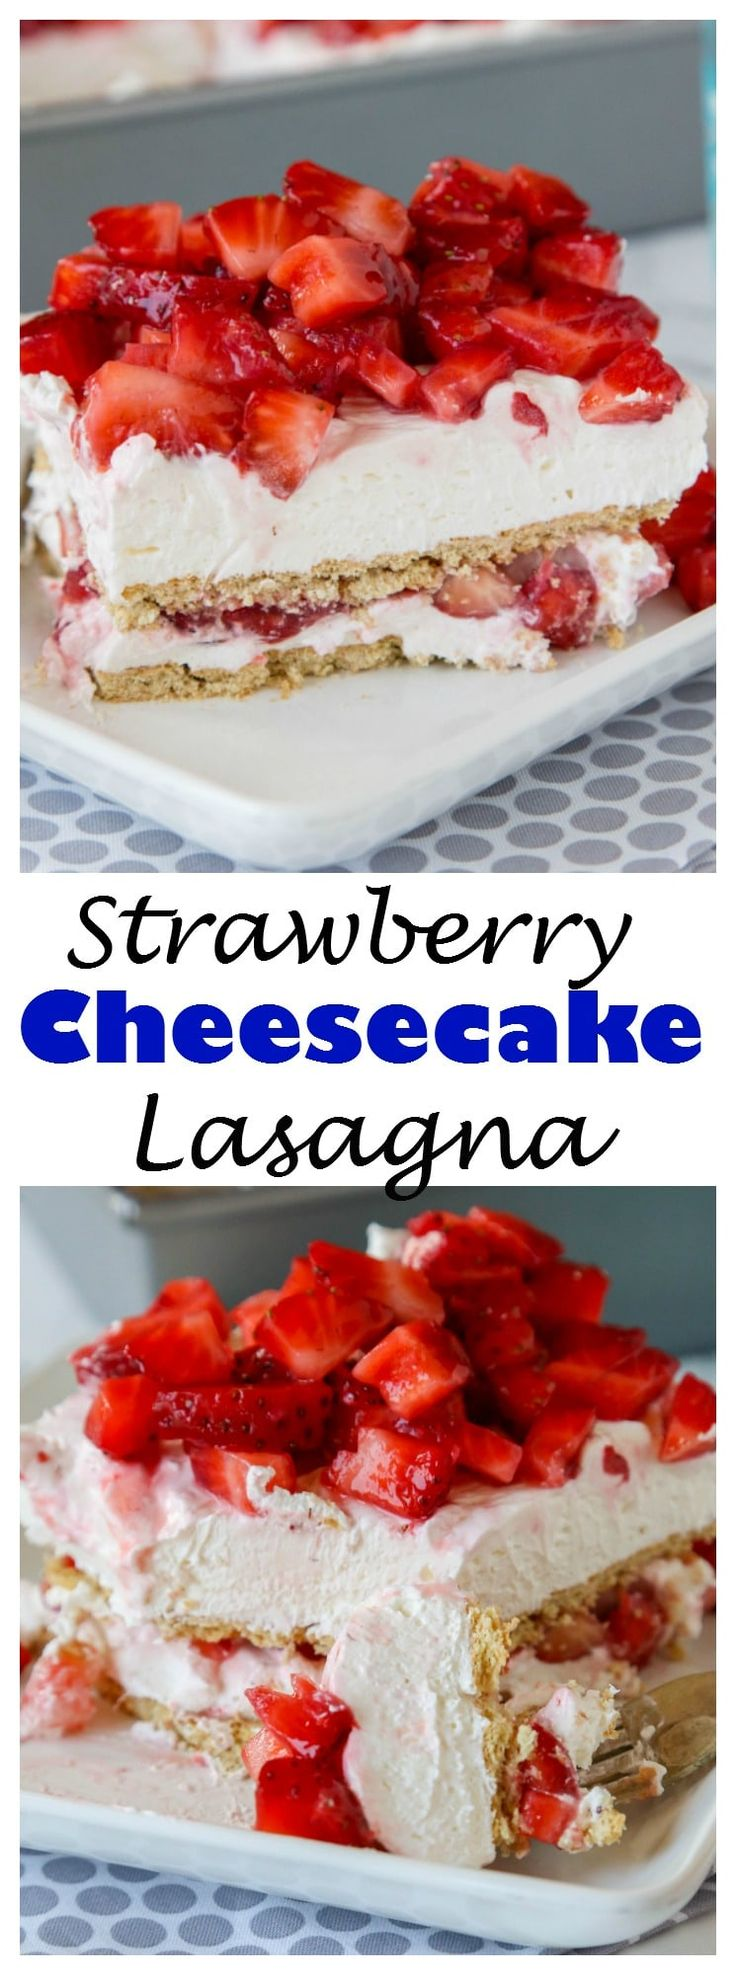 Strawberry Cheesecake Lasagna -You love lasagna as a main dish, so why not serve it for dessert too? Layers of fresh strawberries, sweet cream, and graham crackers are stacked high in this no-bake sweet treat.